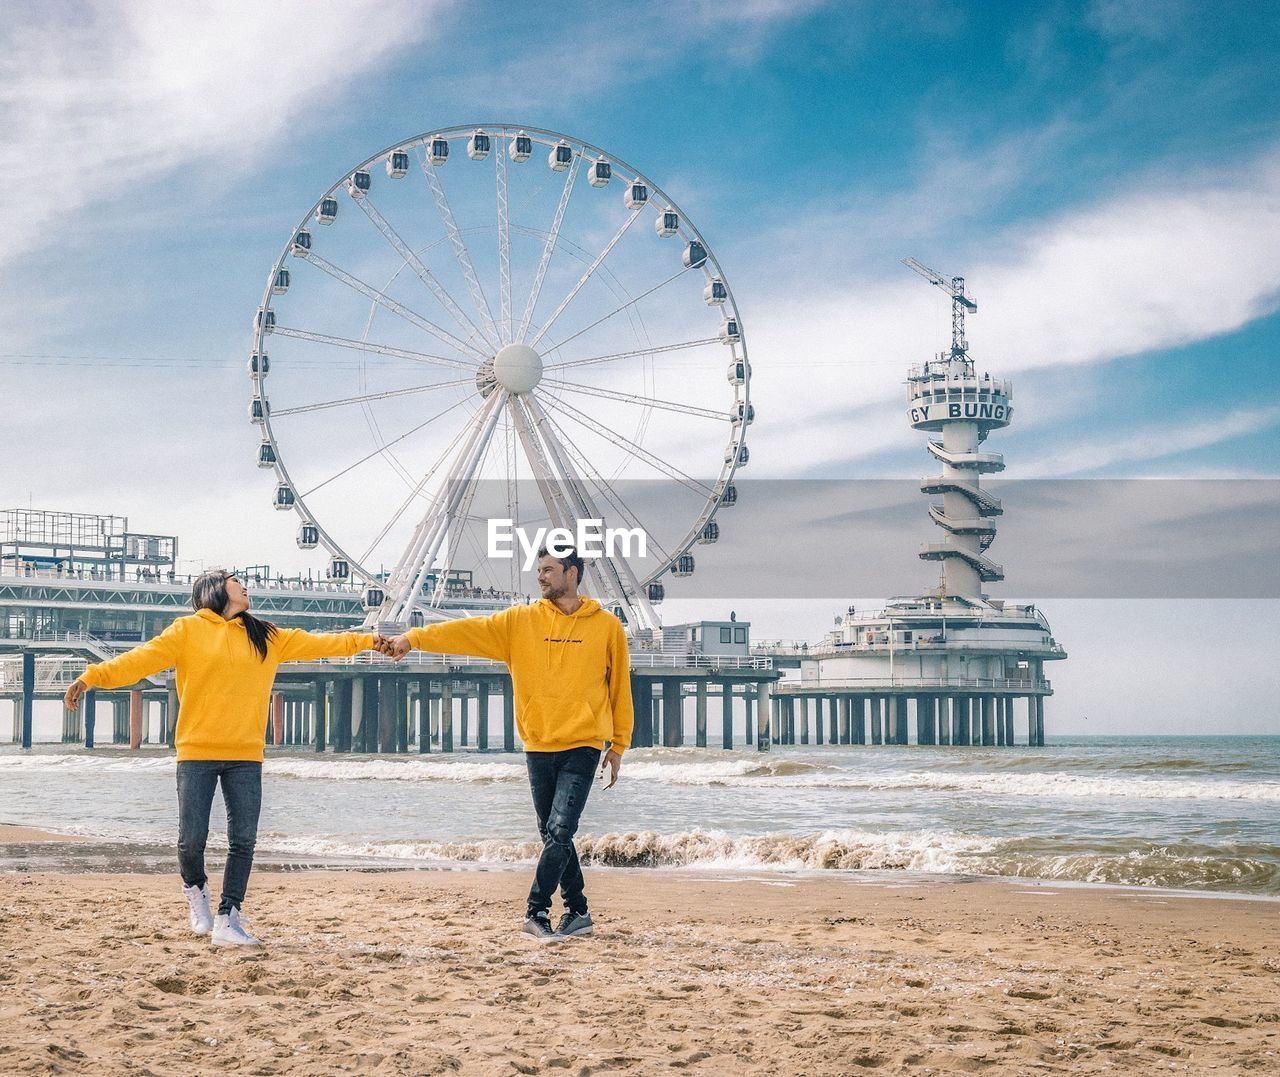 sky, water, amusement park ride, cloud - sky, ferris wheel, leisure activity, sea, nature, full length, amusement park, architecture, built structure, men, beach, real people, tourism, arts culture and entertainment, day, travel destinations, outdoors